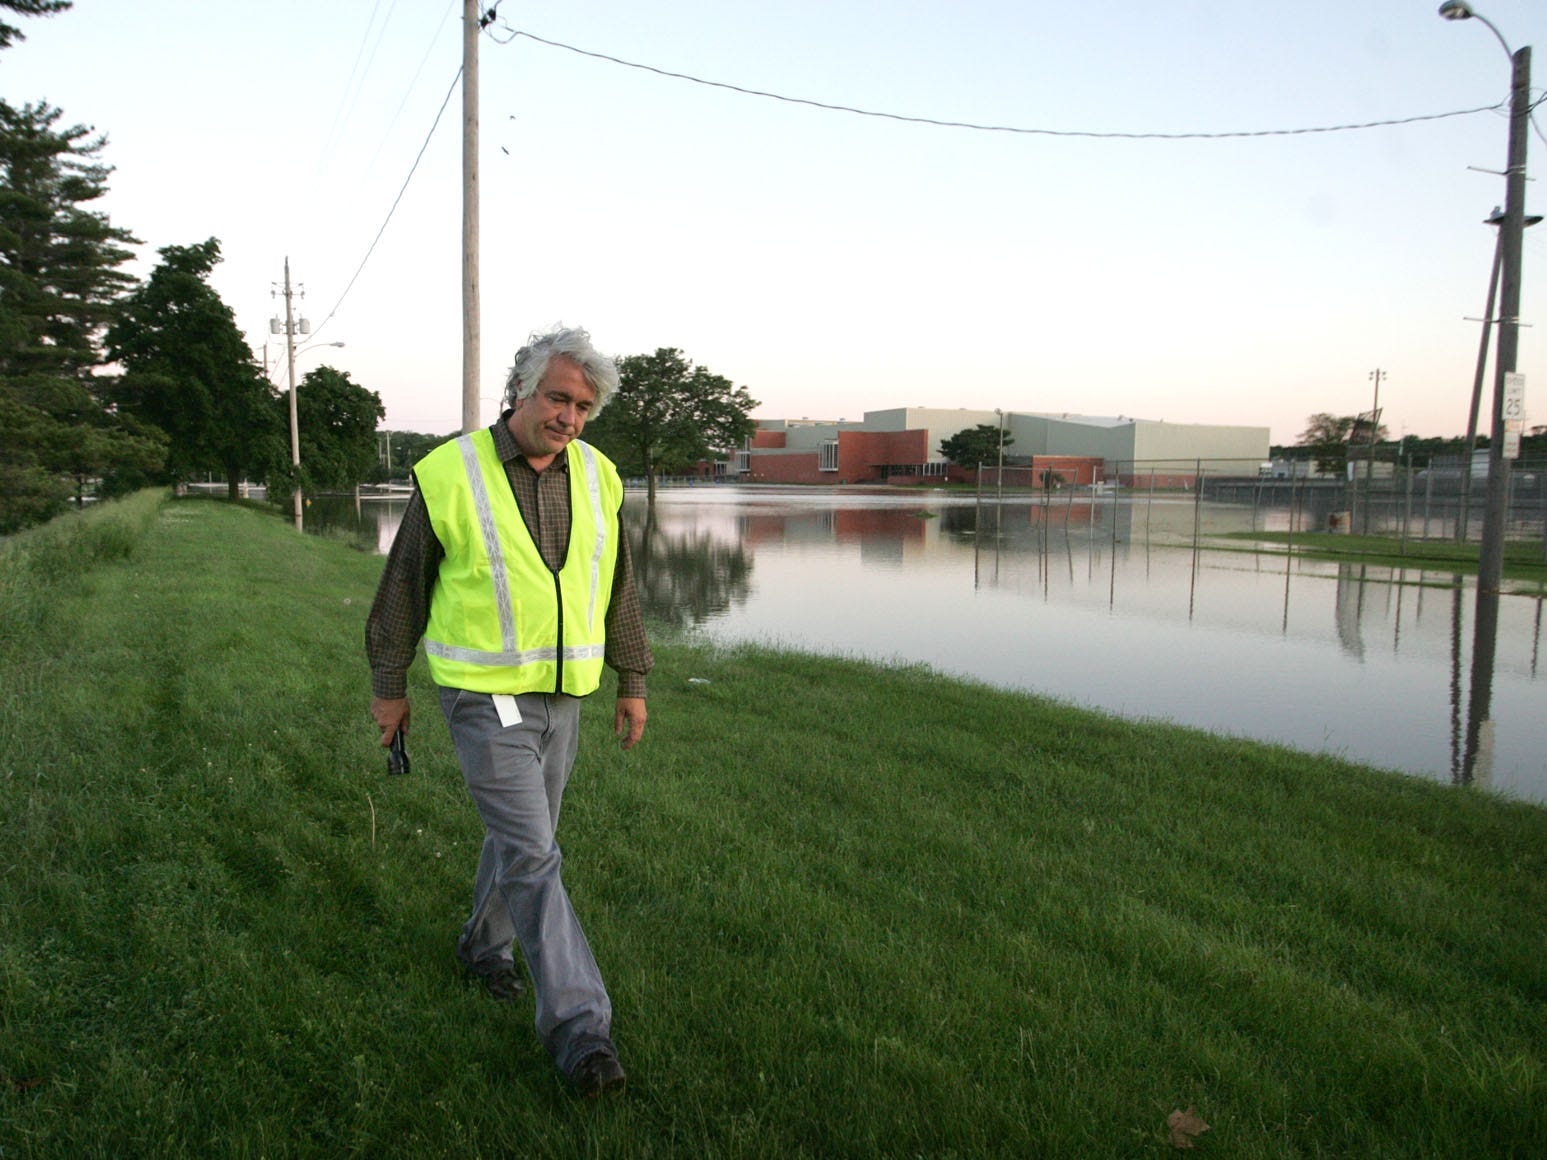 Bill Stowe walks away after viewing the flood waters near North High School during the 2008 flood. A breech in the levee west of North High School brought crews out in droves that morning.